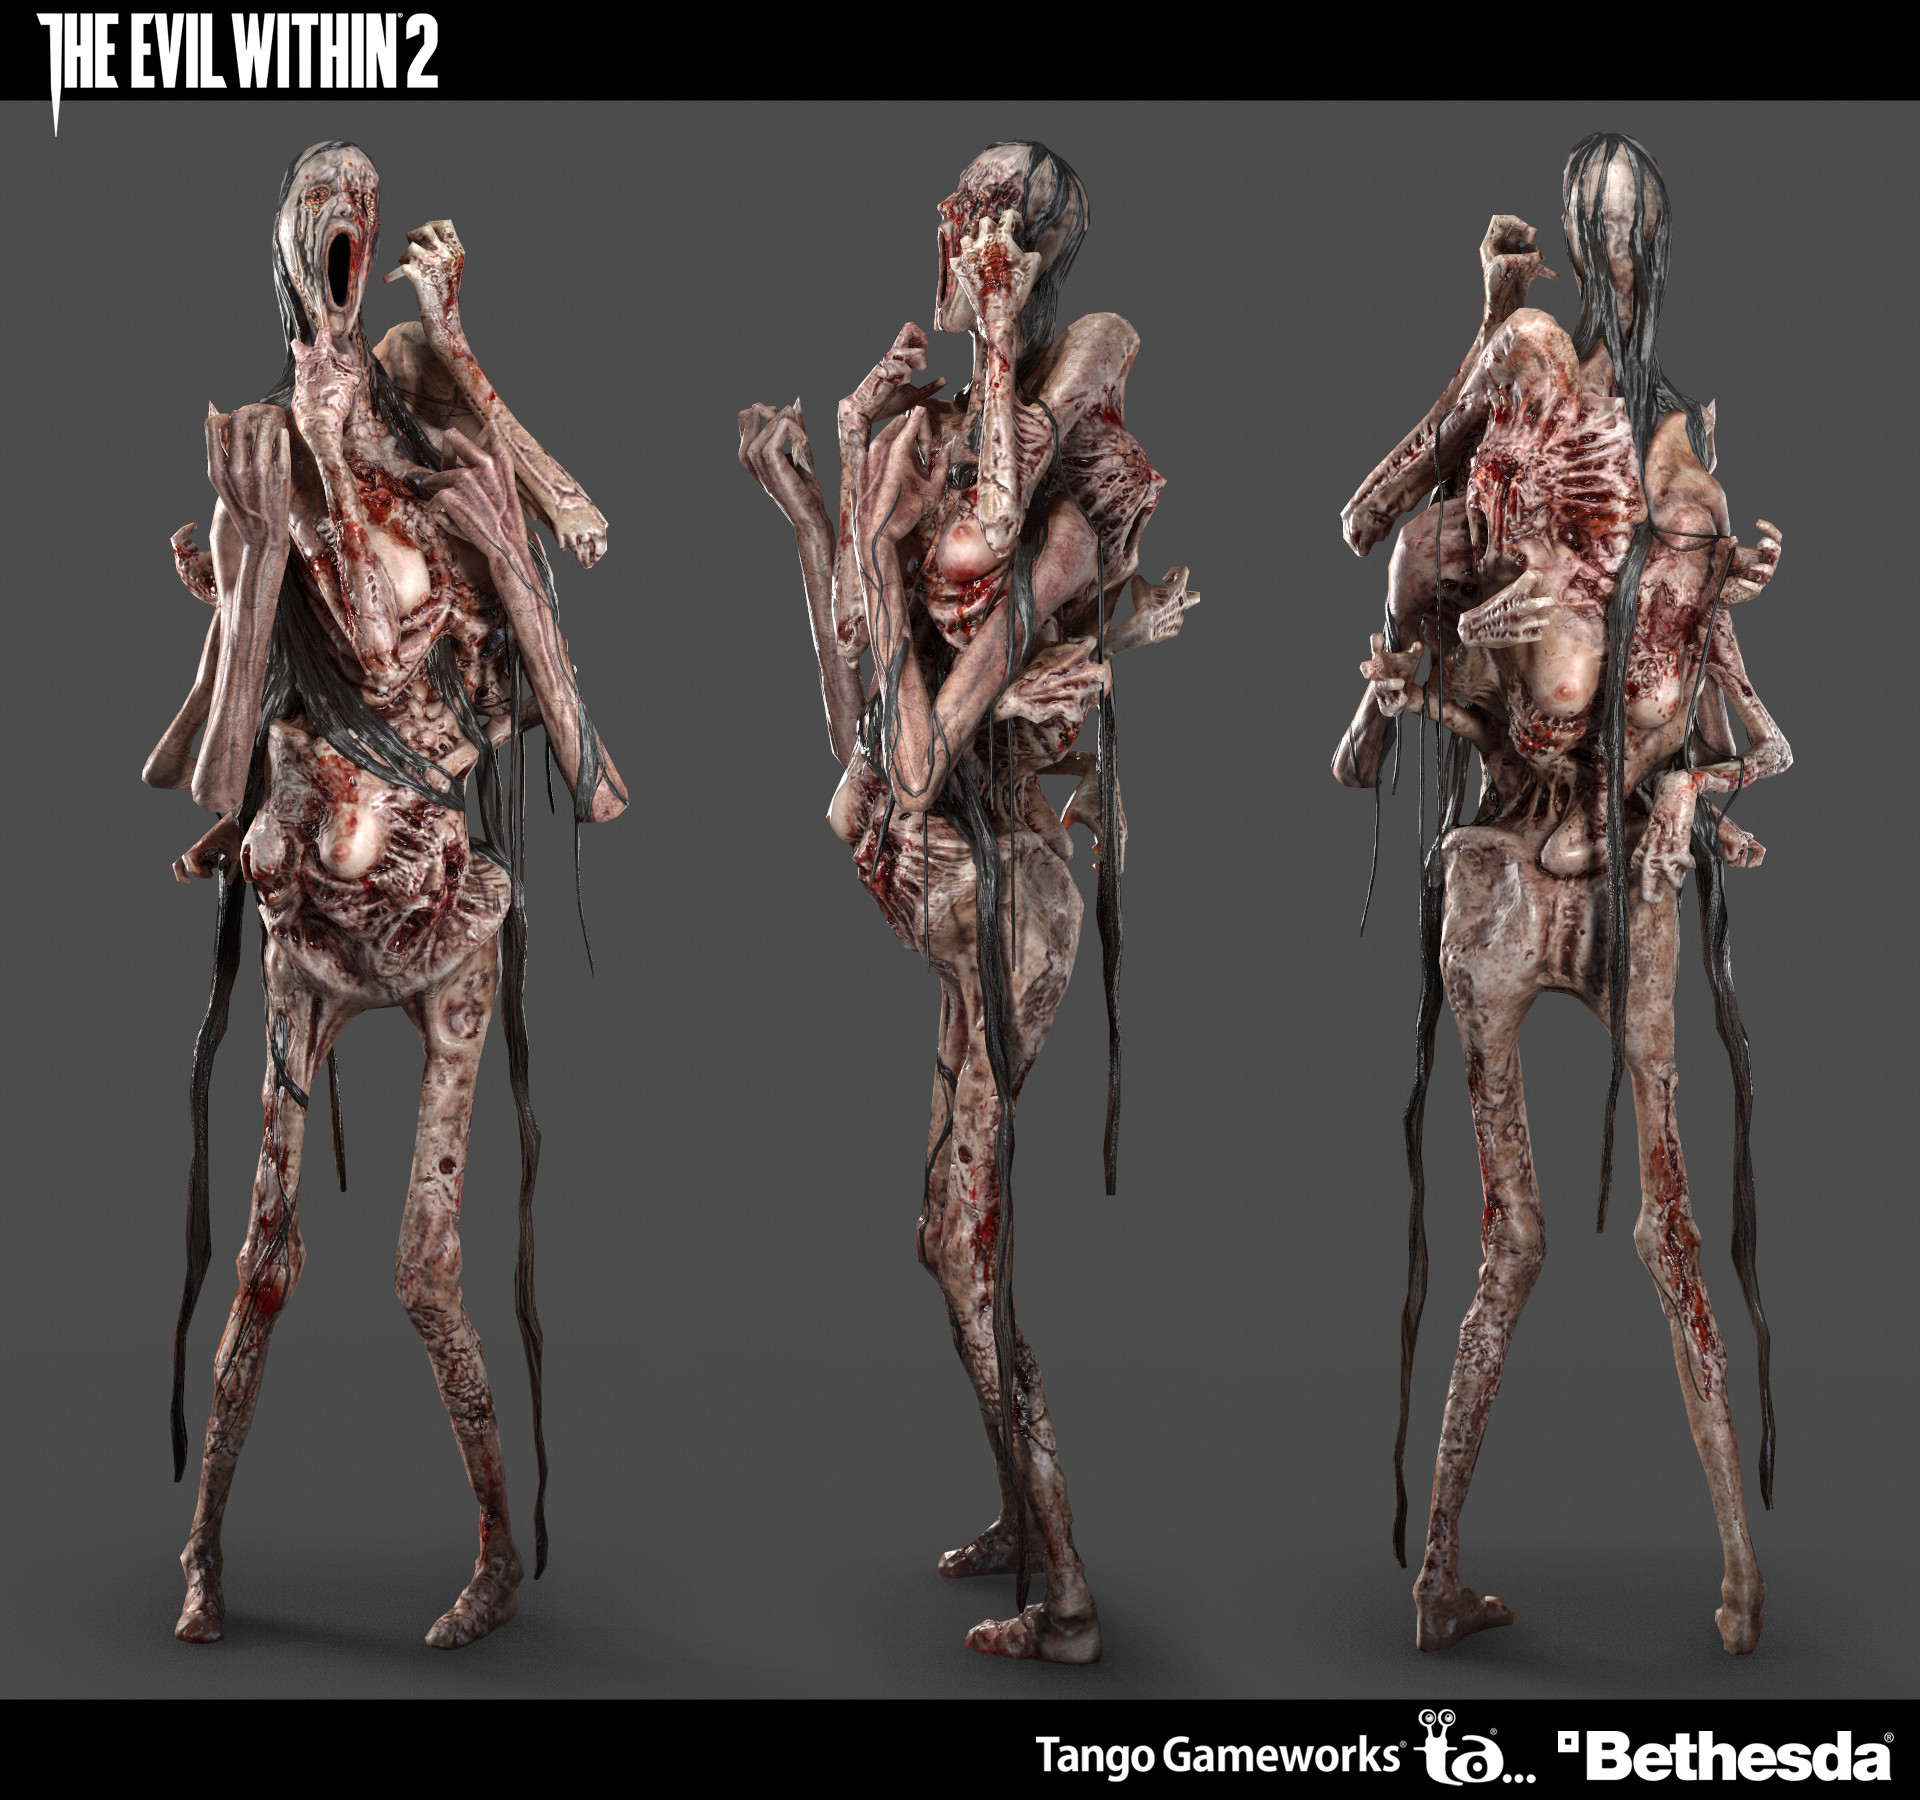 The Evil Within 2 Enemies Lasopadive